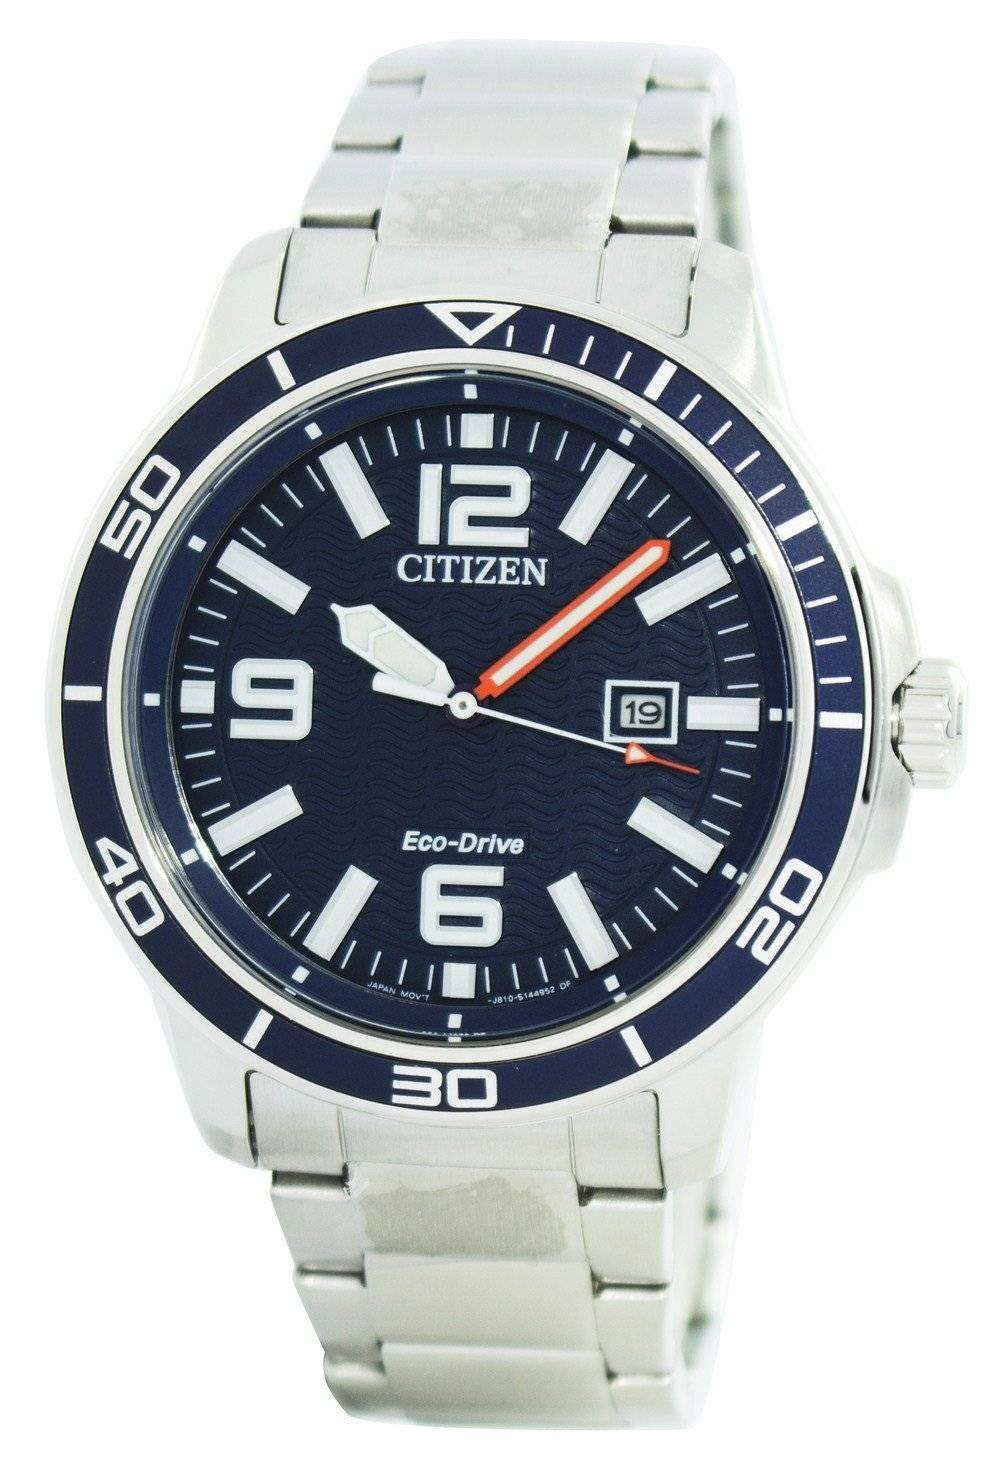 3d1238caf3718b Shop from the world's largest selection and best deals for Watches, Parts &  Accessories. Citizen Watch - Mens Eco-Drive World. Citizen Watch - Mens ...